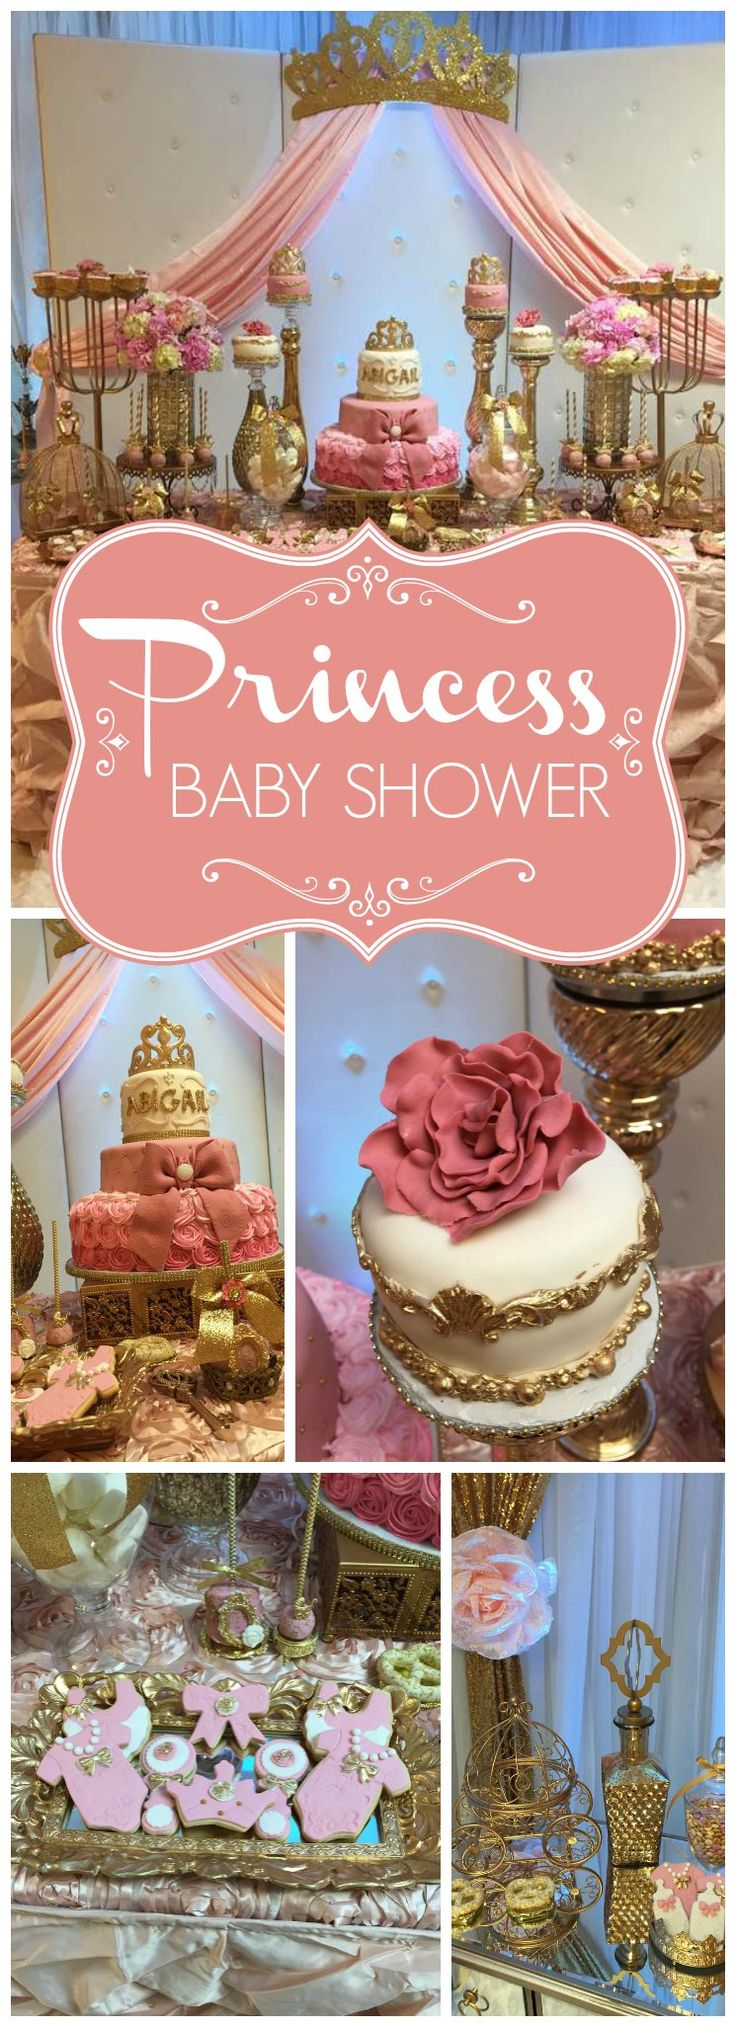 Princess Baby Shower  Baby Shower Little Princess on her